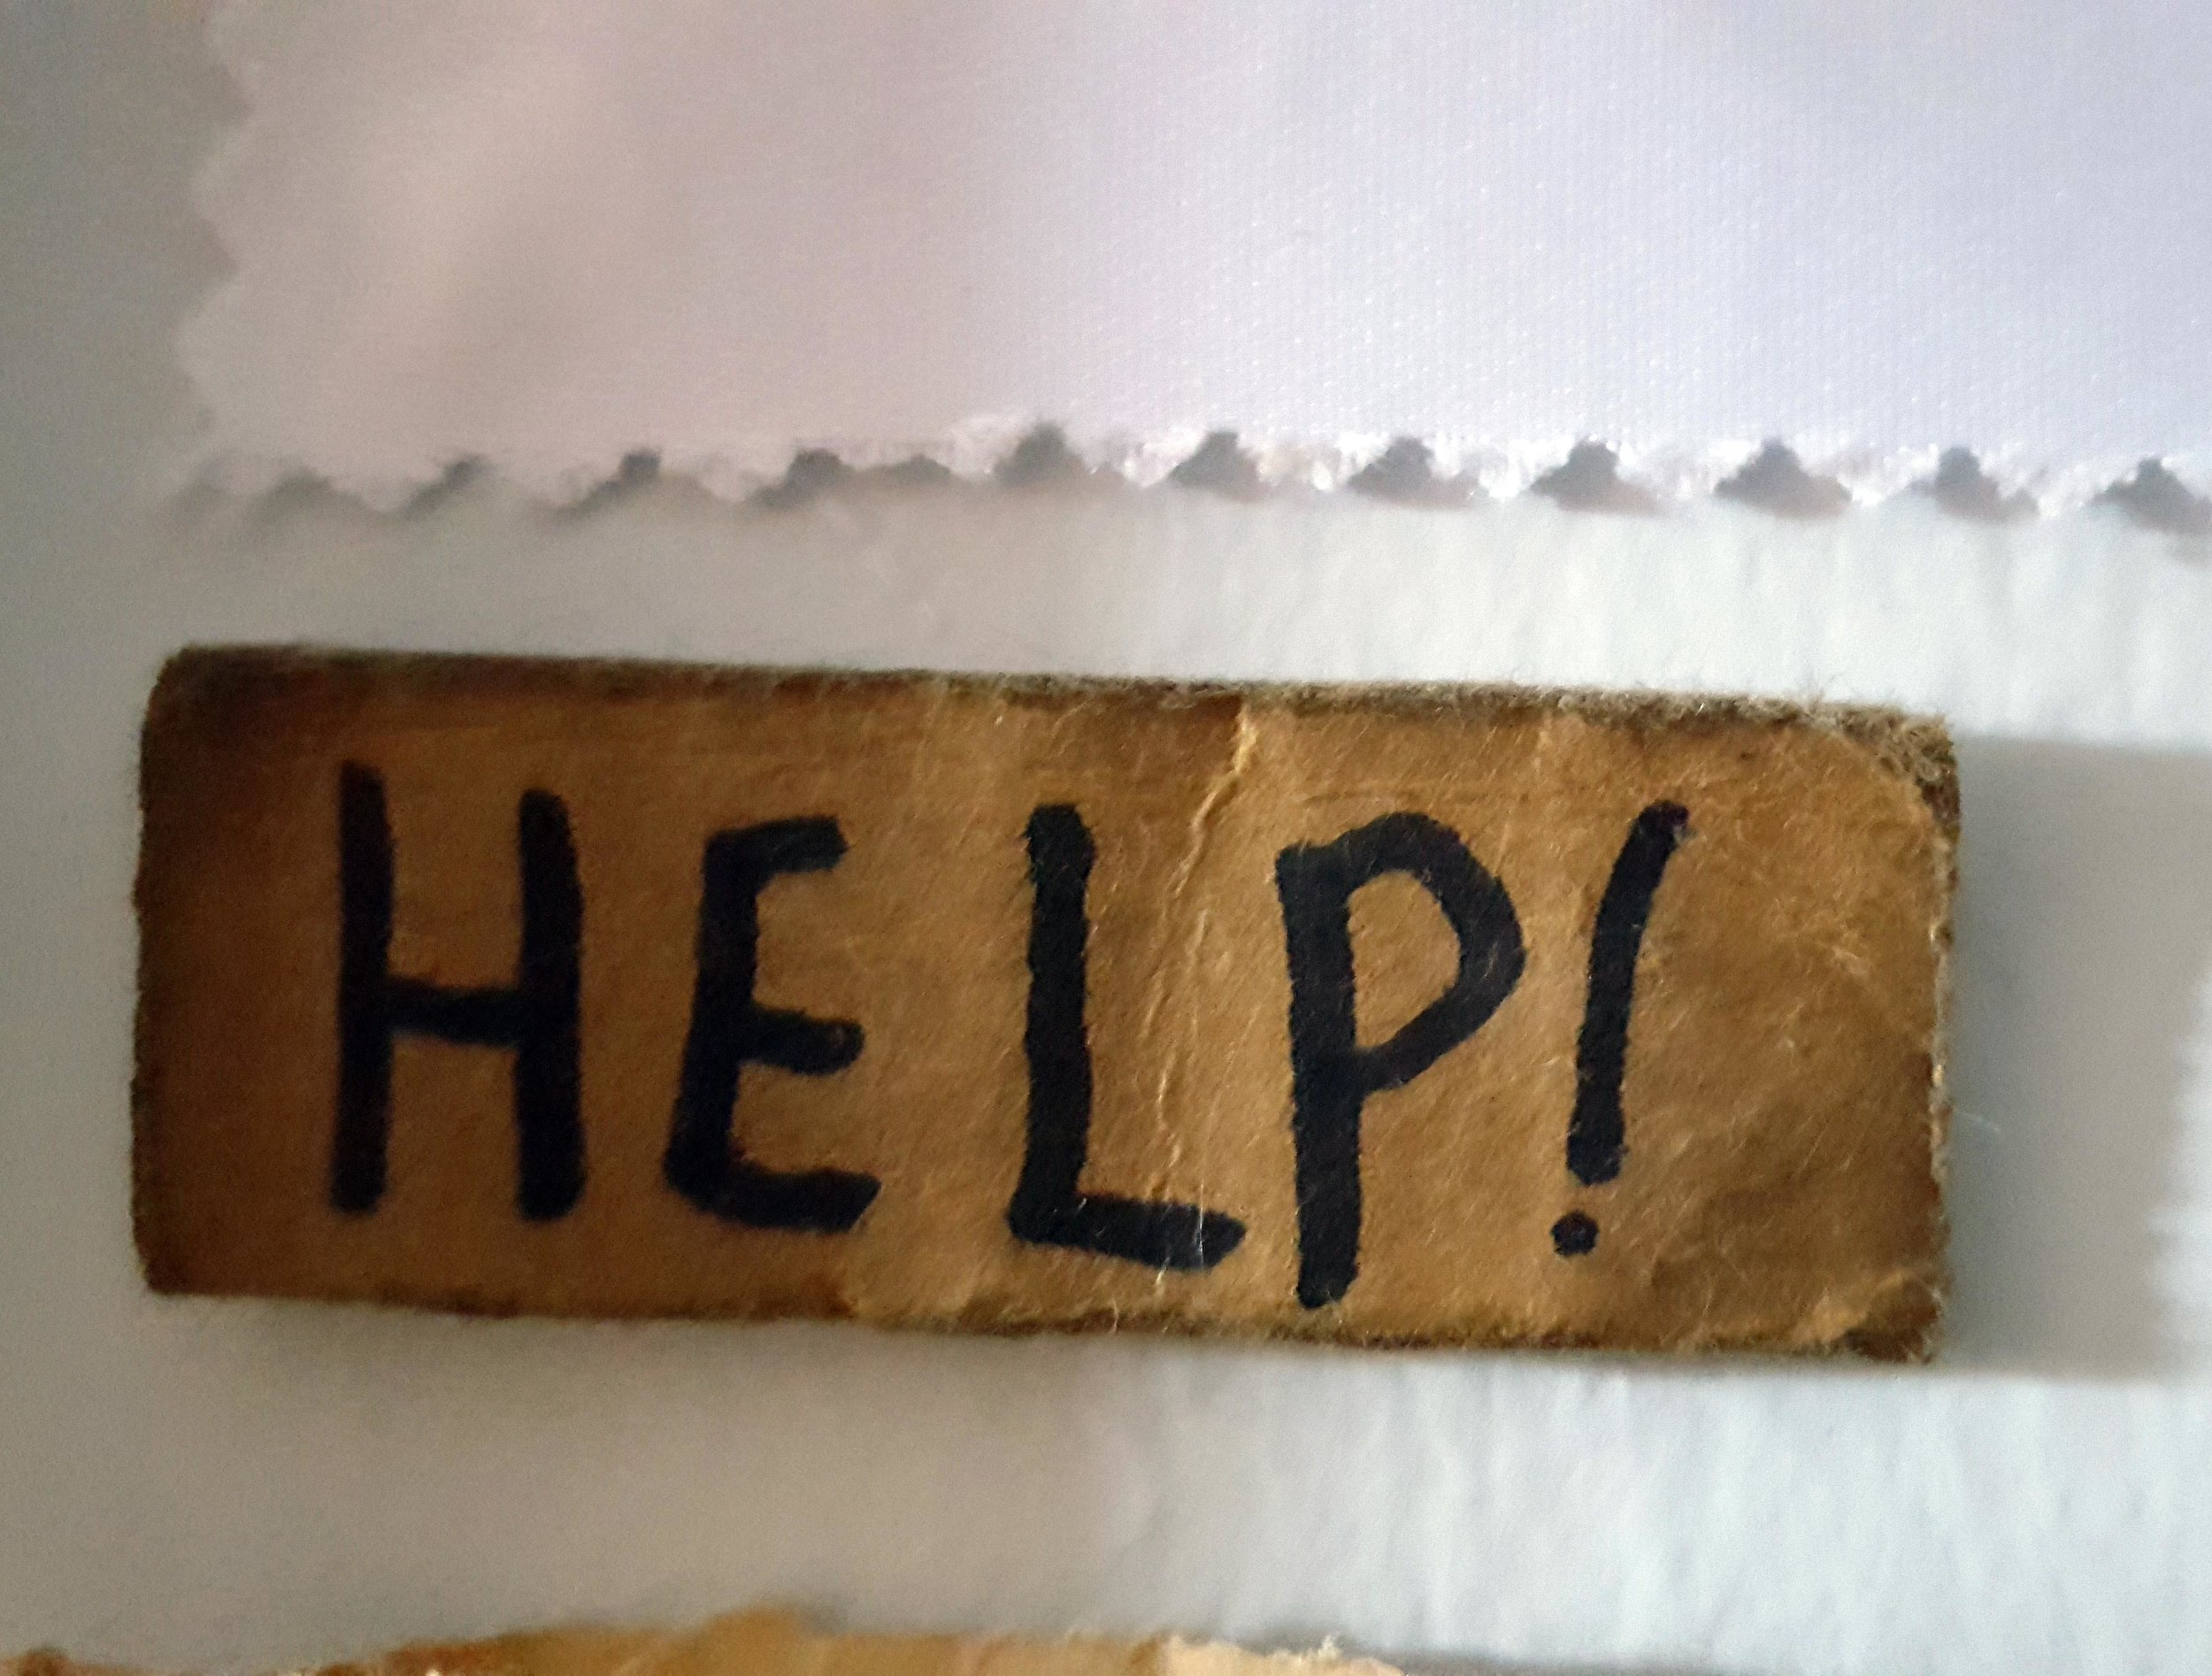 This little cardboard sign hangs on my wall. I bought it a few years ago from a panhandler on the Avenue. I've always loved it, I loved that he was so open about asking for help. It reminds me to do the same.